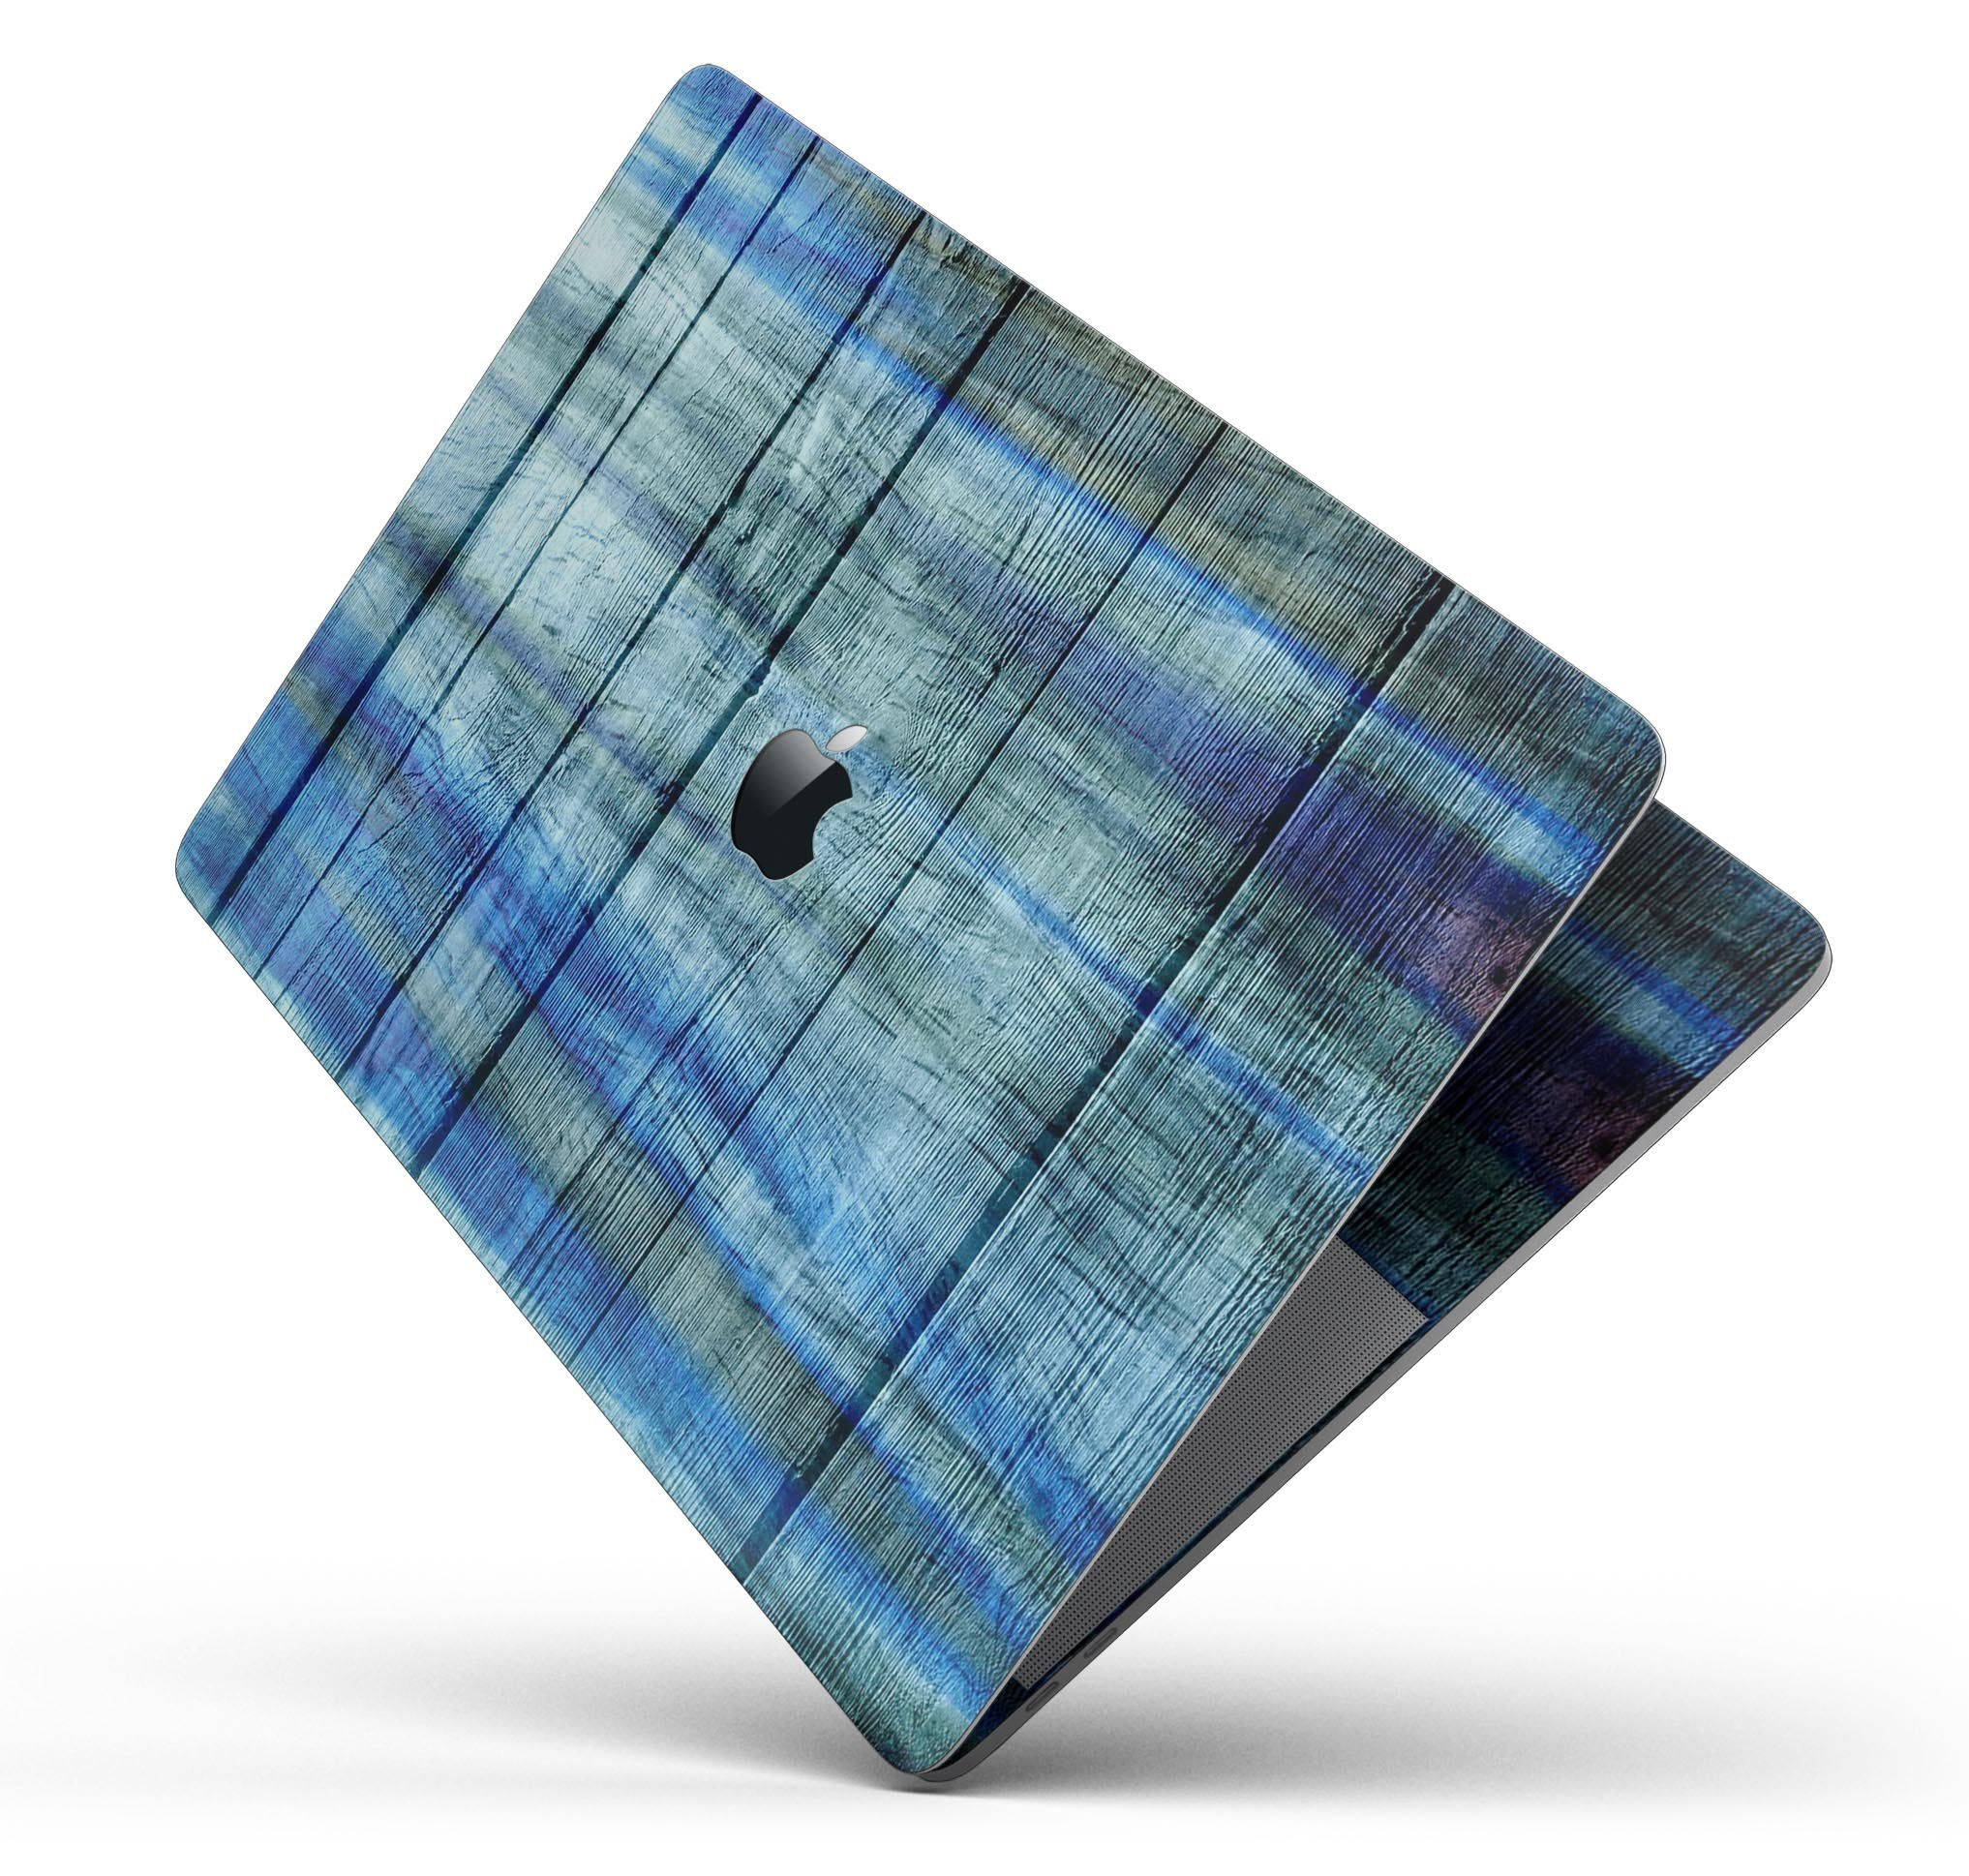 Wood Pattern Design Skinz Premium Full-Body Cover Wrap Decal Skin-Kit for The Apple MacBook 13'' Pro with Retina Display (A1502/A1425) - Blue and Green Tye-Dyed Wood